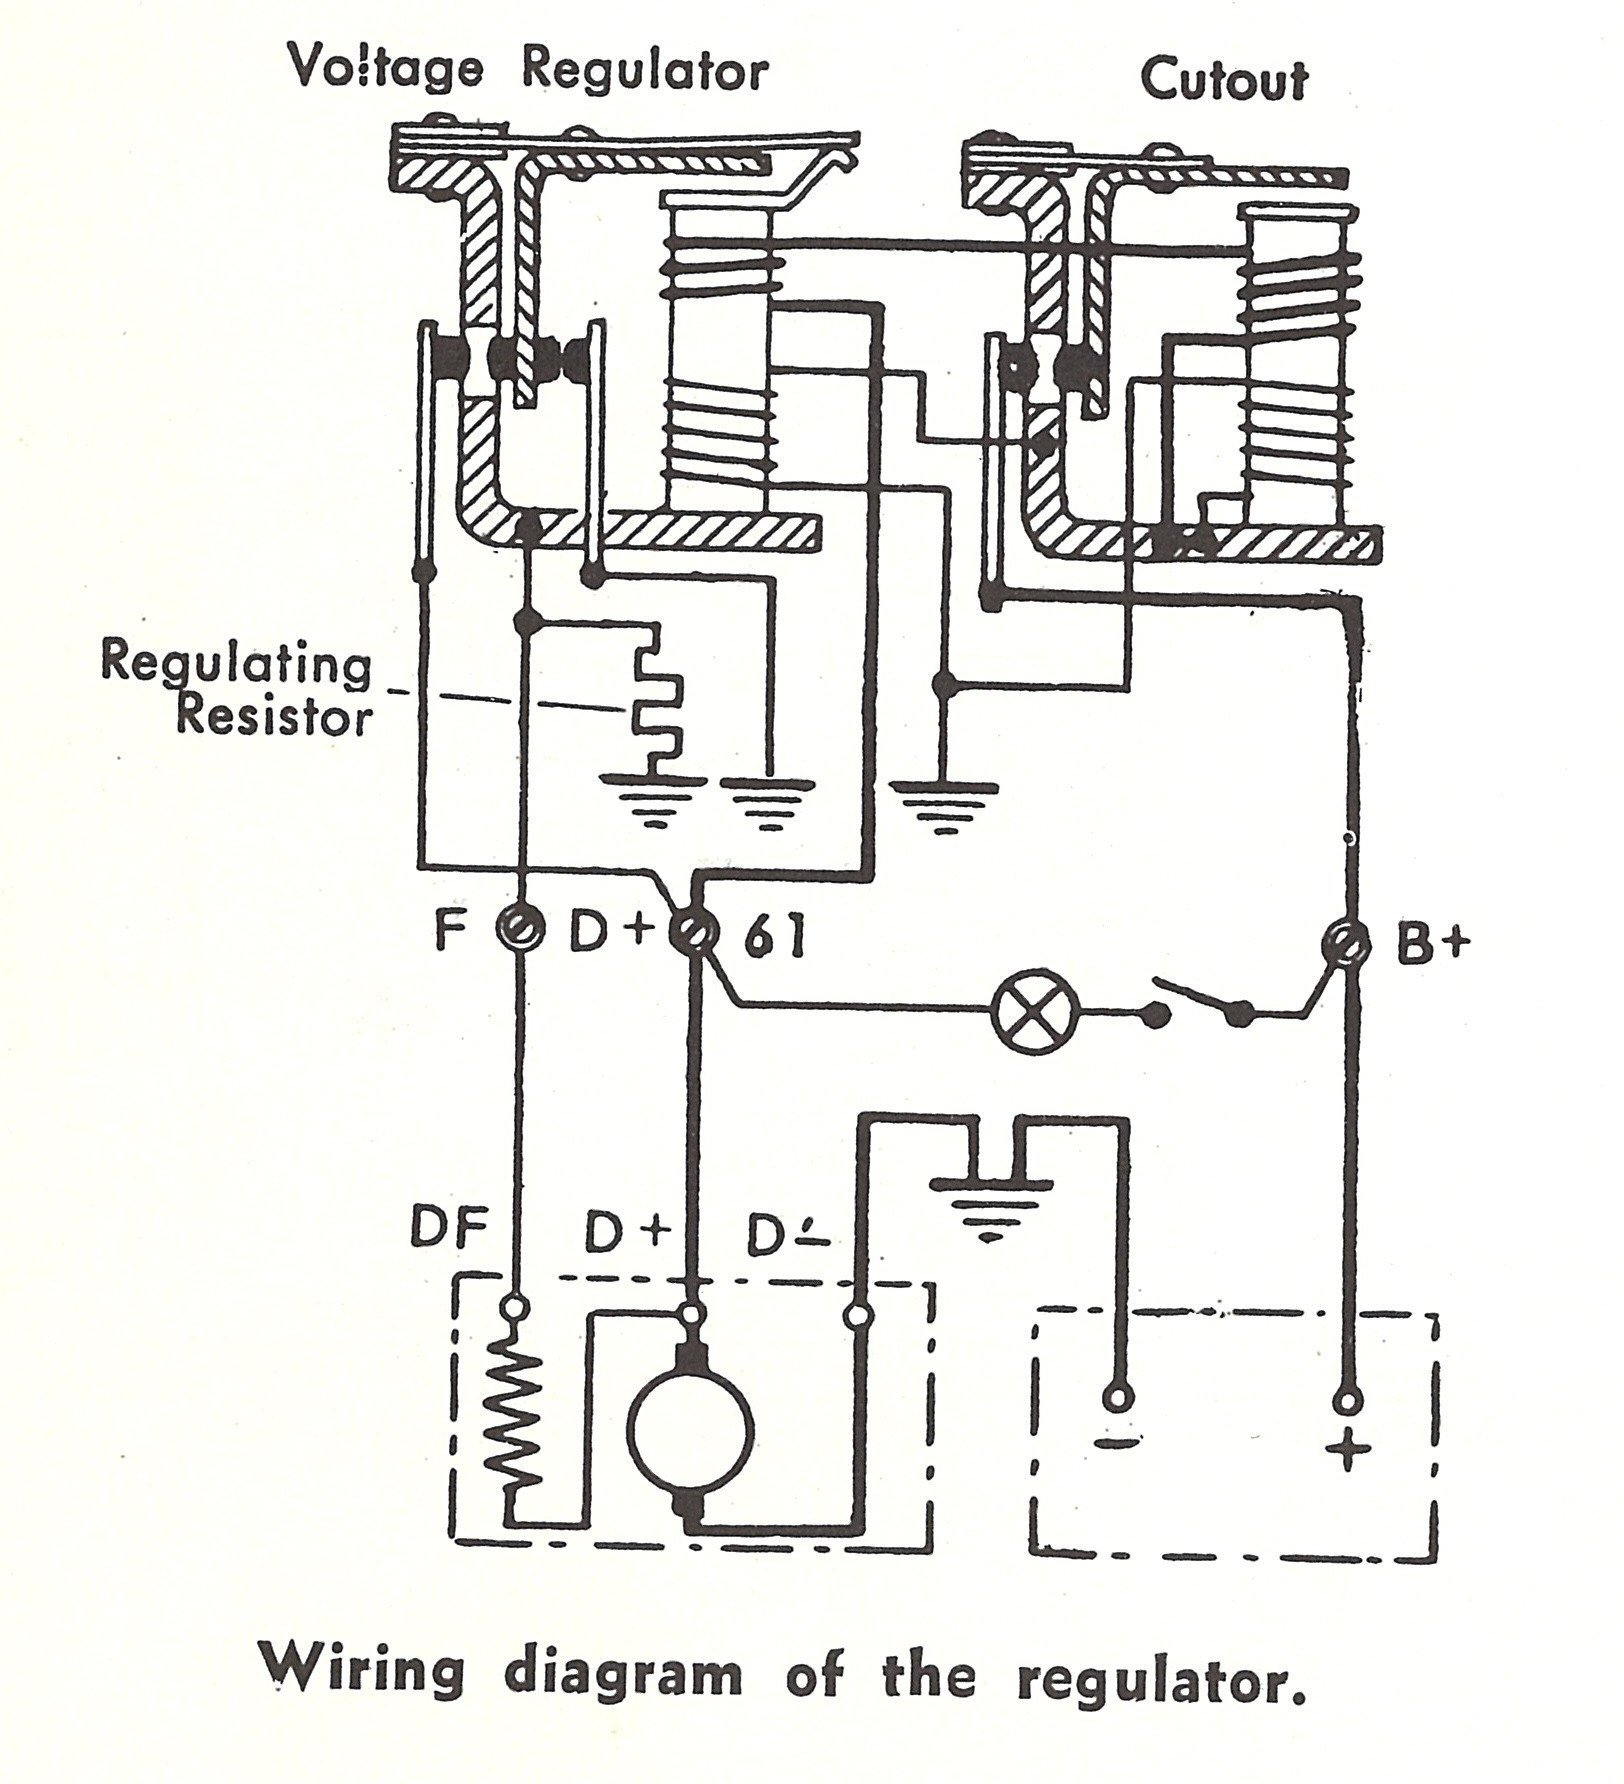 Taurussablewdtoc additionally  additionally Fordexplorerwd further Fordtauruswd Toc in addition Voltage Regulator Diagram Closeup. on 1954 mercury wiring diagram